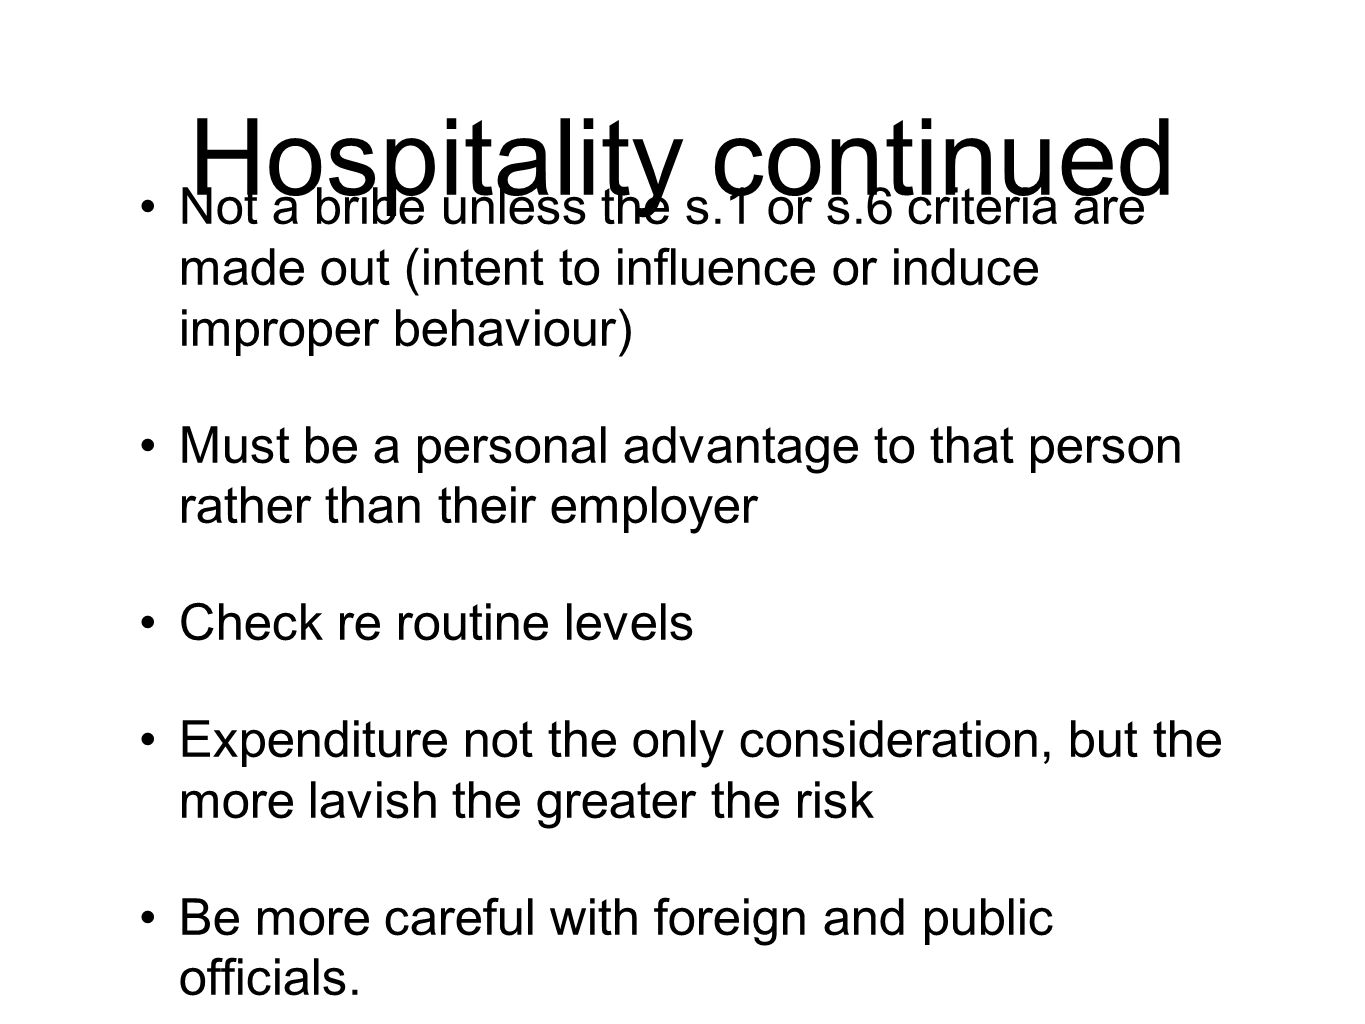 Hospitality continued Not a bribe unless the s.1 or s.6 criteria are made out (intent to influence or induce improper behaviour) Must be a personal advantage to that person rather than their employer Check re routine levels Expenditure not the only consideration, but the more lavish the greater the risk Be more careful with foreign and public officials.